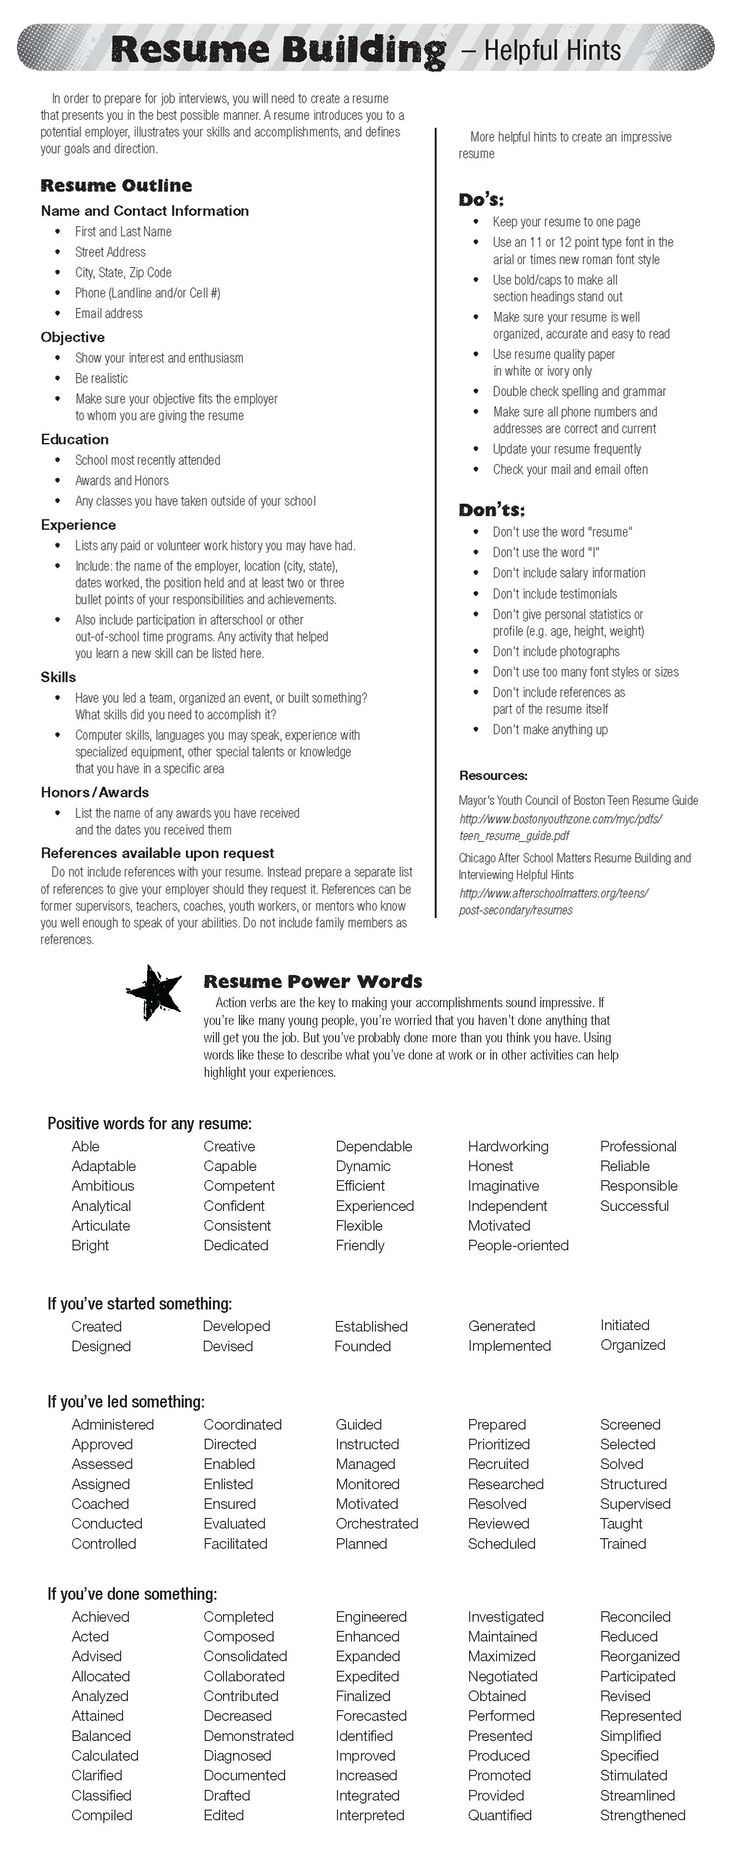 Opposenewapstandardsus  Winsome  Ideas About Resume On Pinterest  Cv Format Resume Cv And  With Goodlooking  Ideas About Resume On Pinterest  Cv Format Resume Cv And Resume Templates With Endearing Resume Words To Avoid Also Free Resume Template Download For Word In Addition Easy Resumes And Resume Interests Section As Well As Sending Resume By Email Additionally Free Simple Resume Templates From Pinterestcom With Opposenewapstandardsus  Goodlooking  Ideas About Resume On Pinterest  Cv Format Resume Cv And  With Endearing  Ideas About Resume On Pinterest  Cv Format Resume Cv And Resume Templates And Winsome Resume Words To Avoid Also Free Resume Template Download For Word In Addition Easy Resumes From Pinterestcom